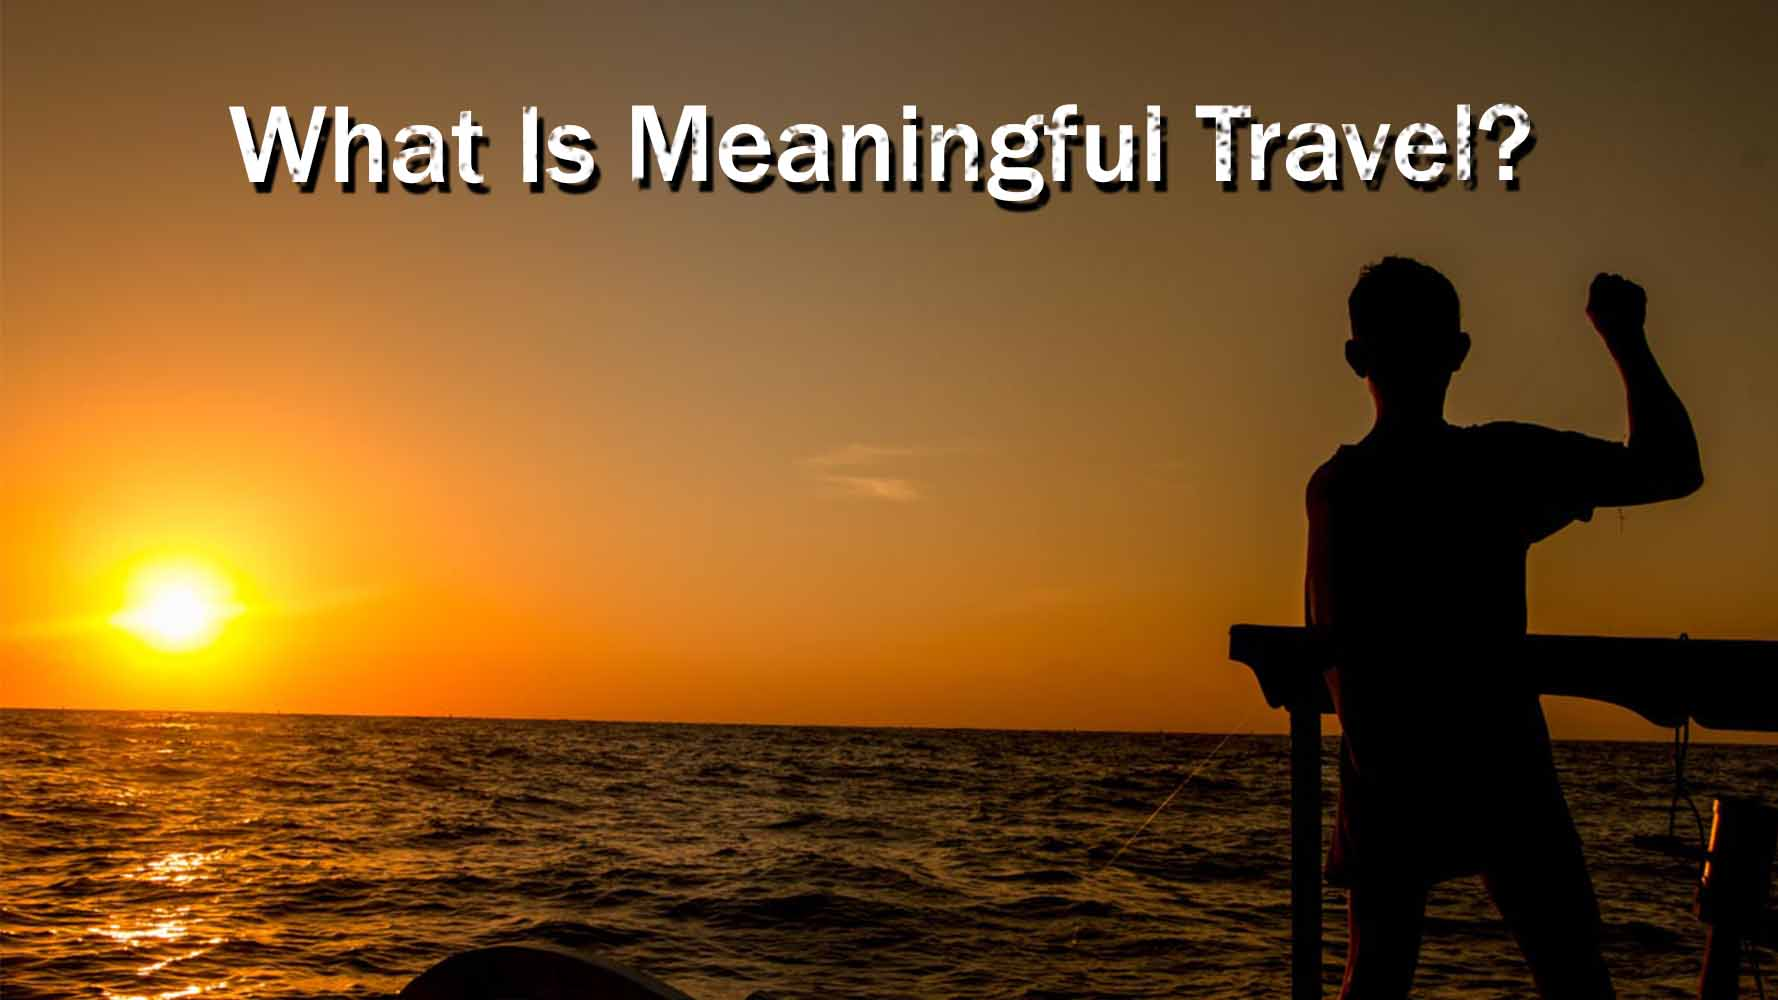 What Is Meaningful Travel?